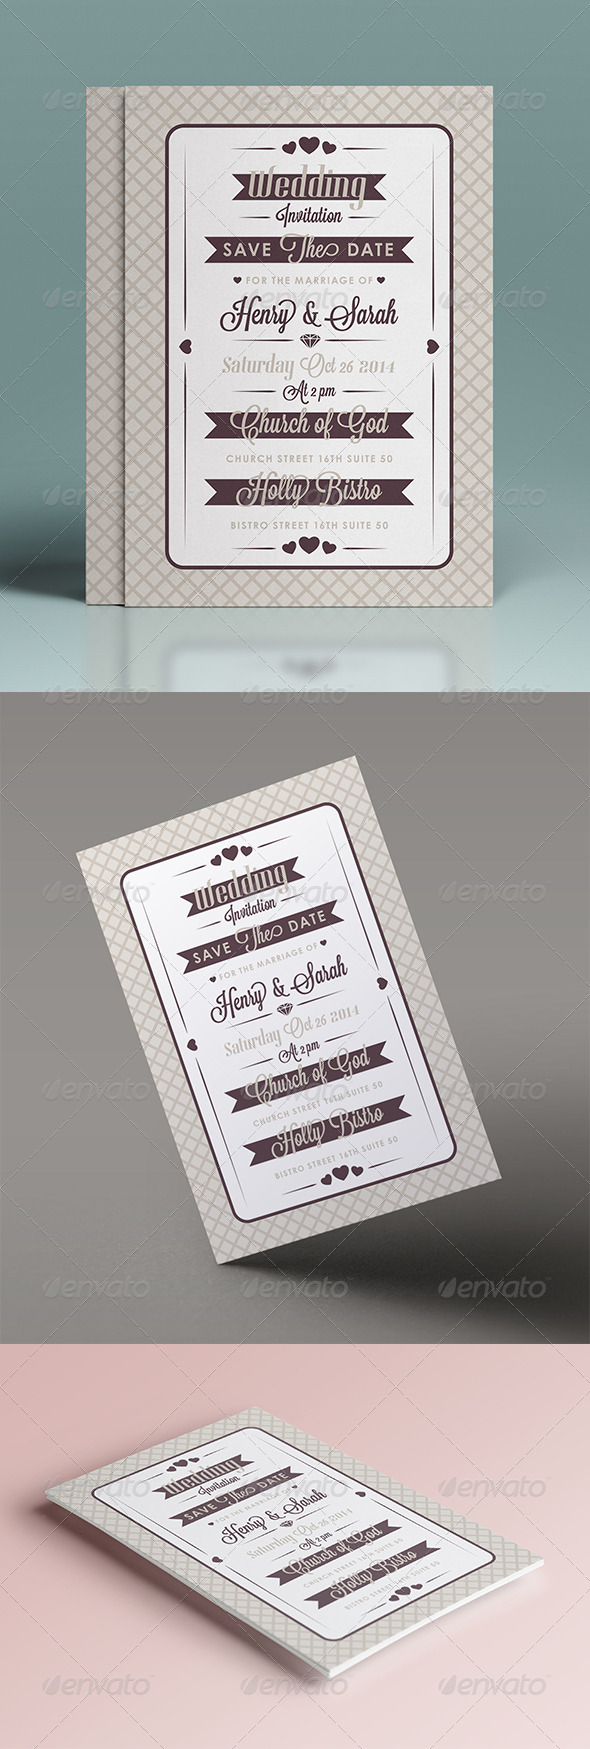 GraphicRiver Wedding Invitation 7376699